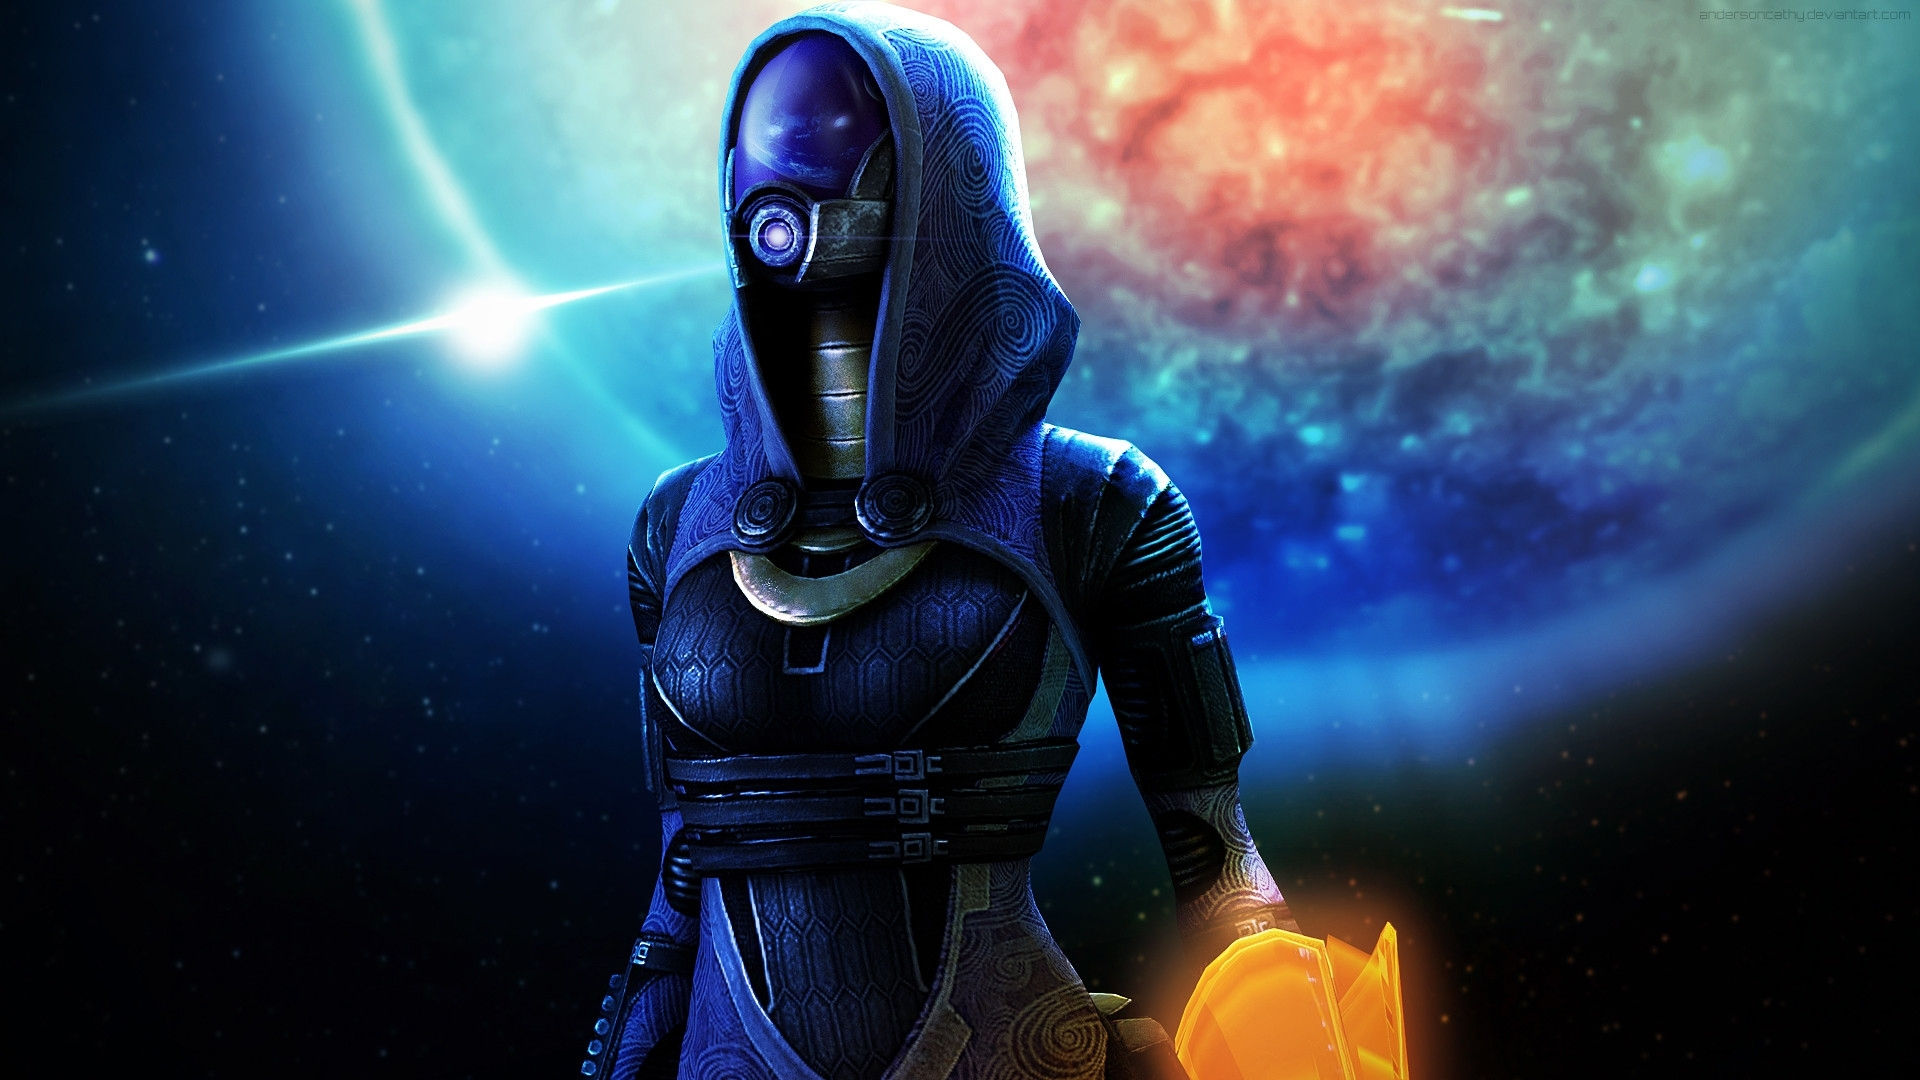 mass effect tali wallpaper (86+ images)